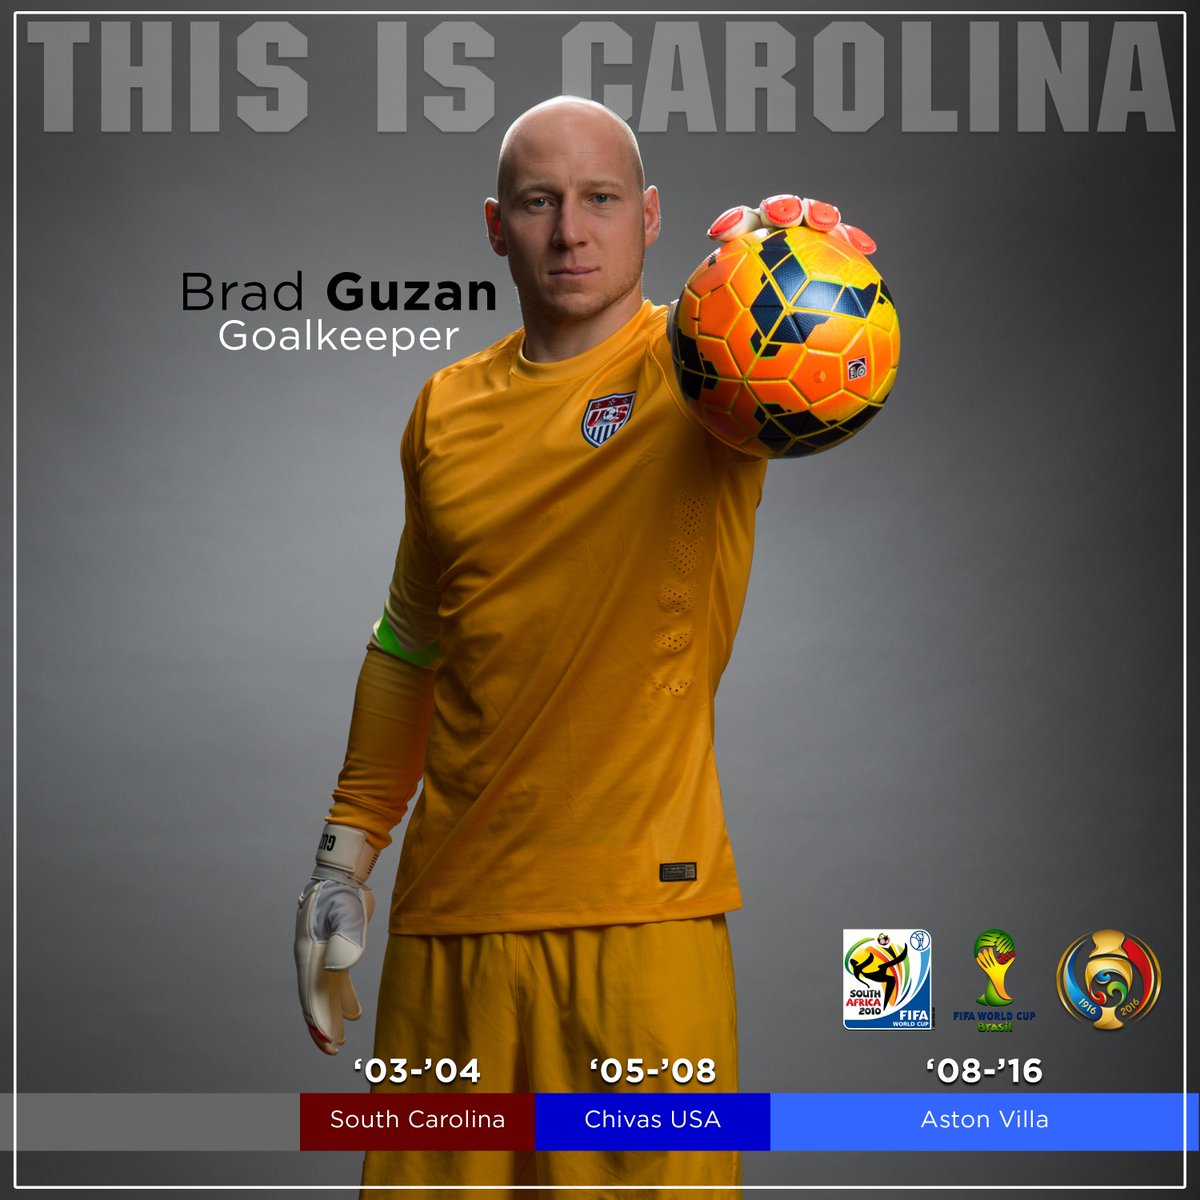 Good luck to former #Gamecocks GK Brad Guzan who starts in goal tonight for the US National Team https://t.co/UWlMjRmCqi